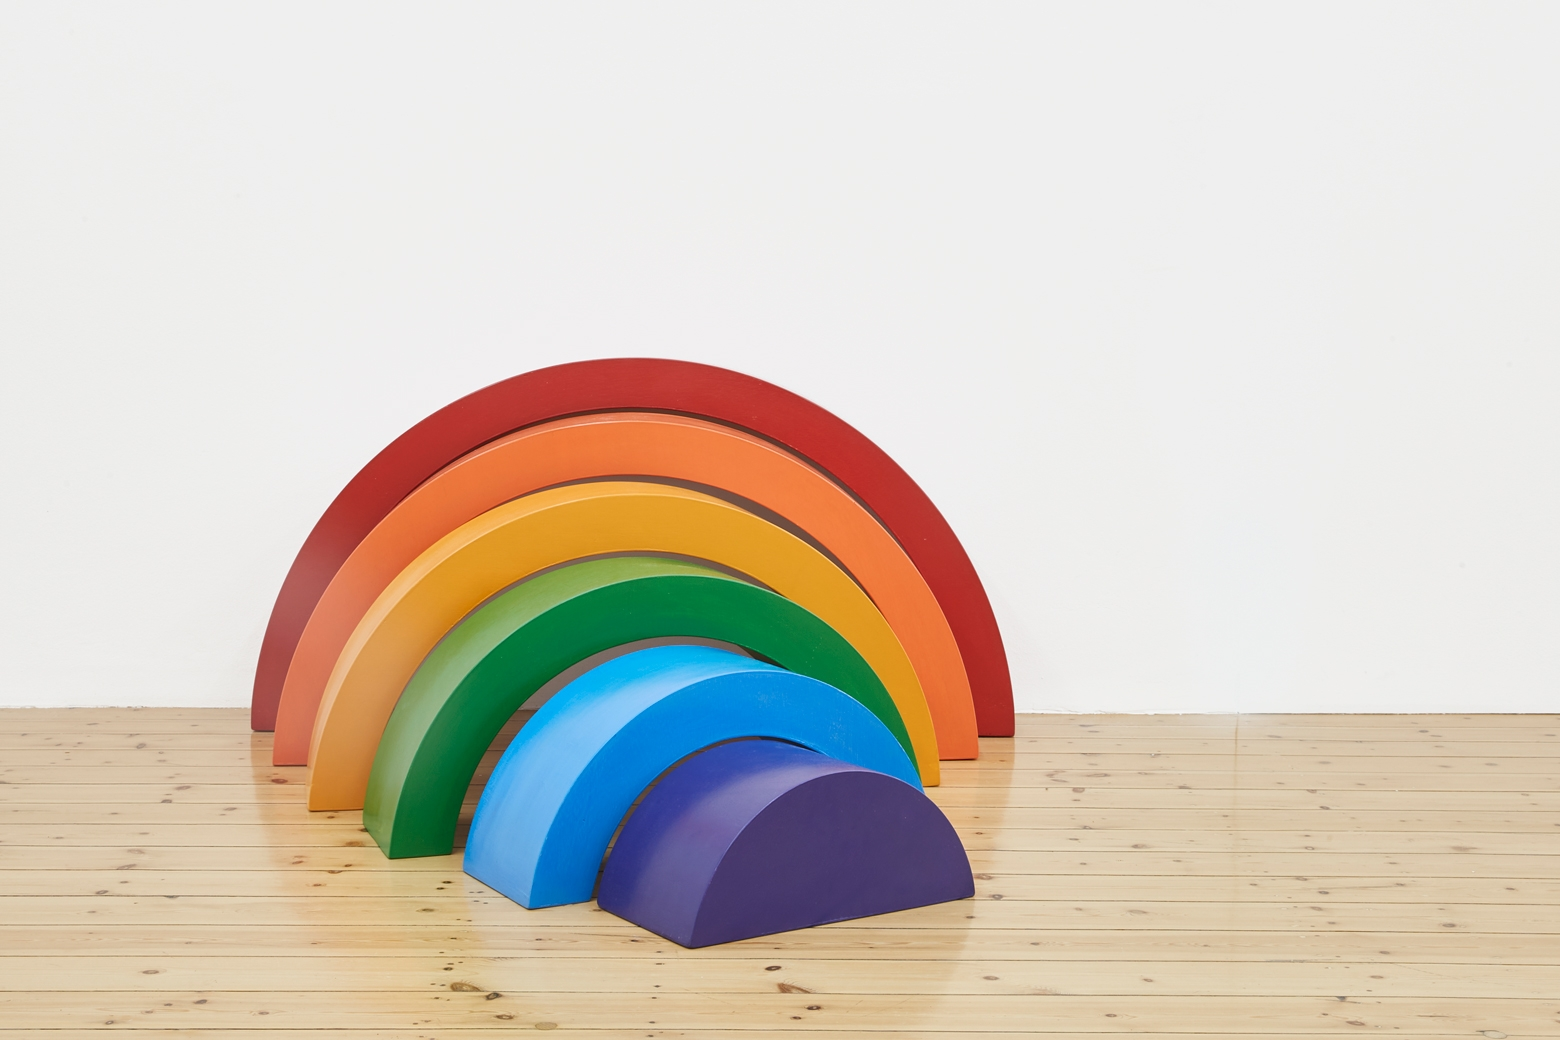 Rainbow, 2018, wood, paint, consisting of 6 elements, dimensions variable